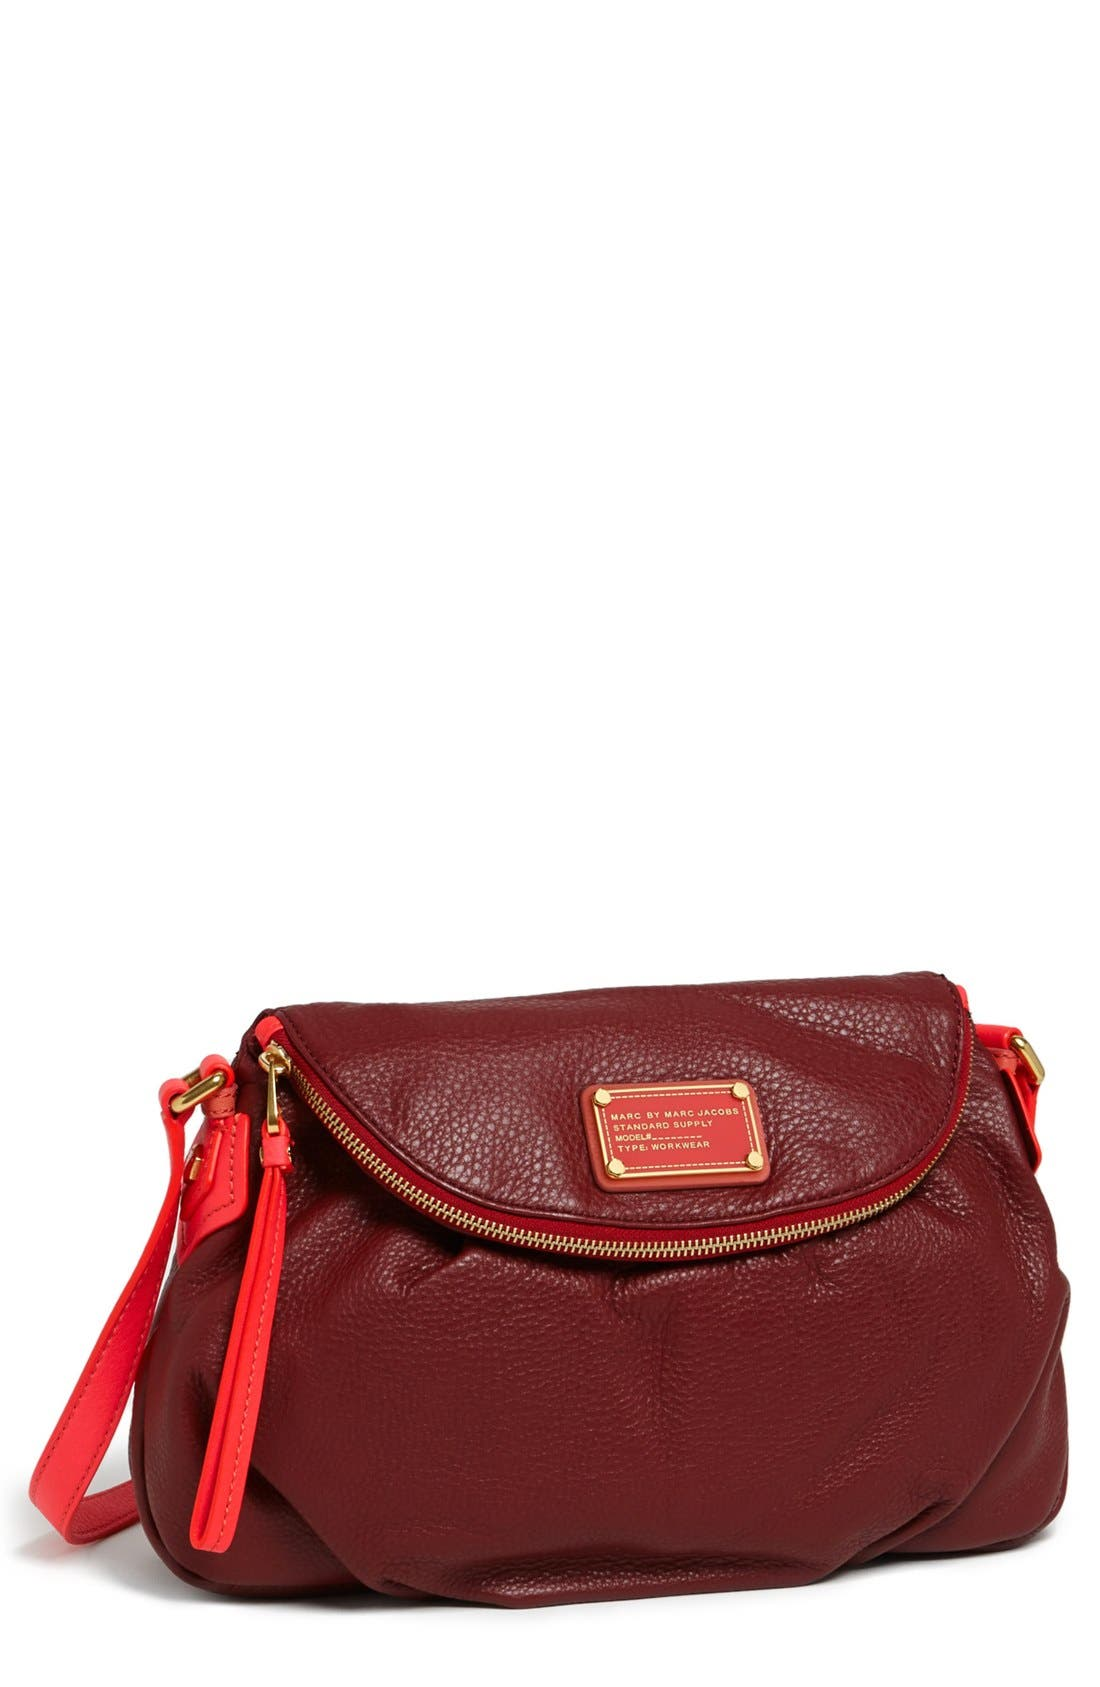 Main Image - MARC BY MARC JACOBS 'Classic Q - Natasha' Leather Crossbody Bag